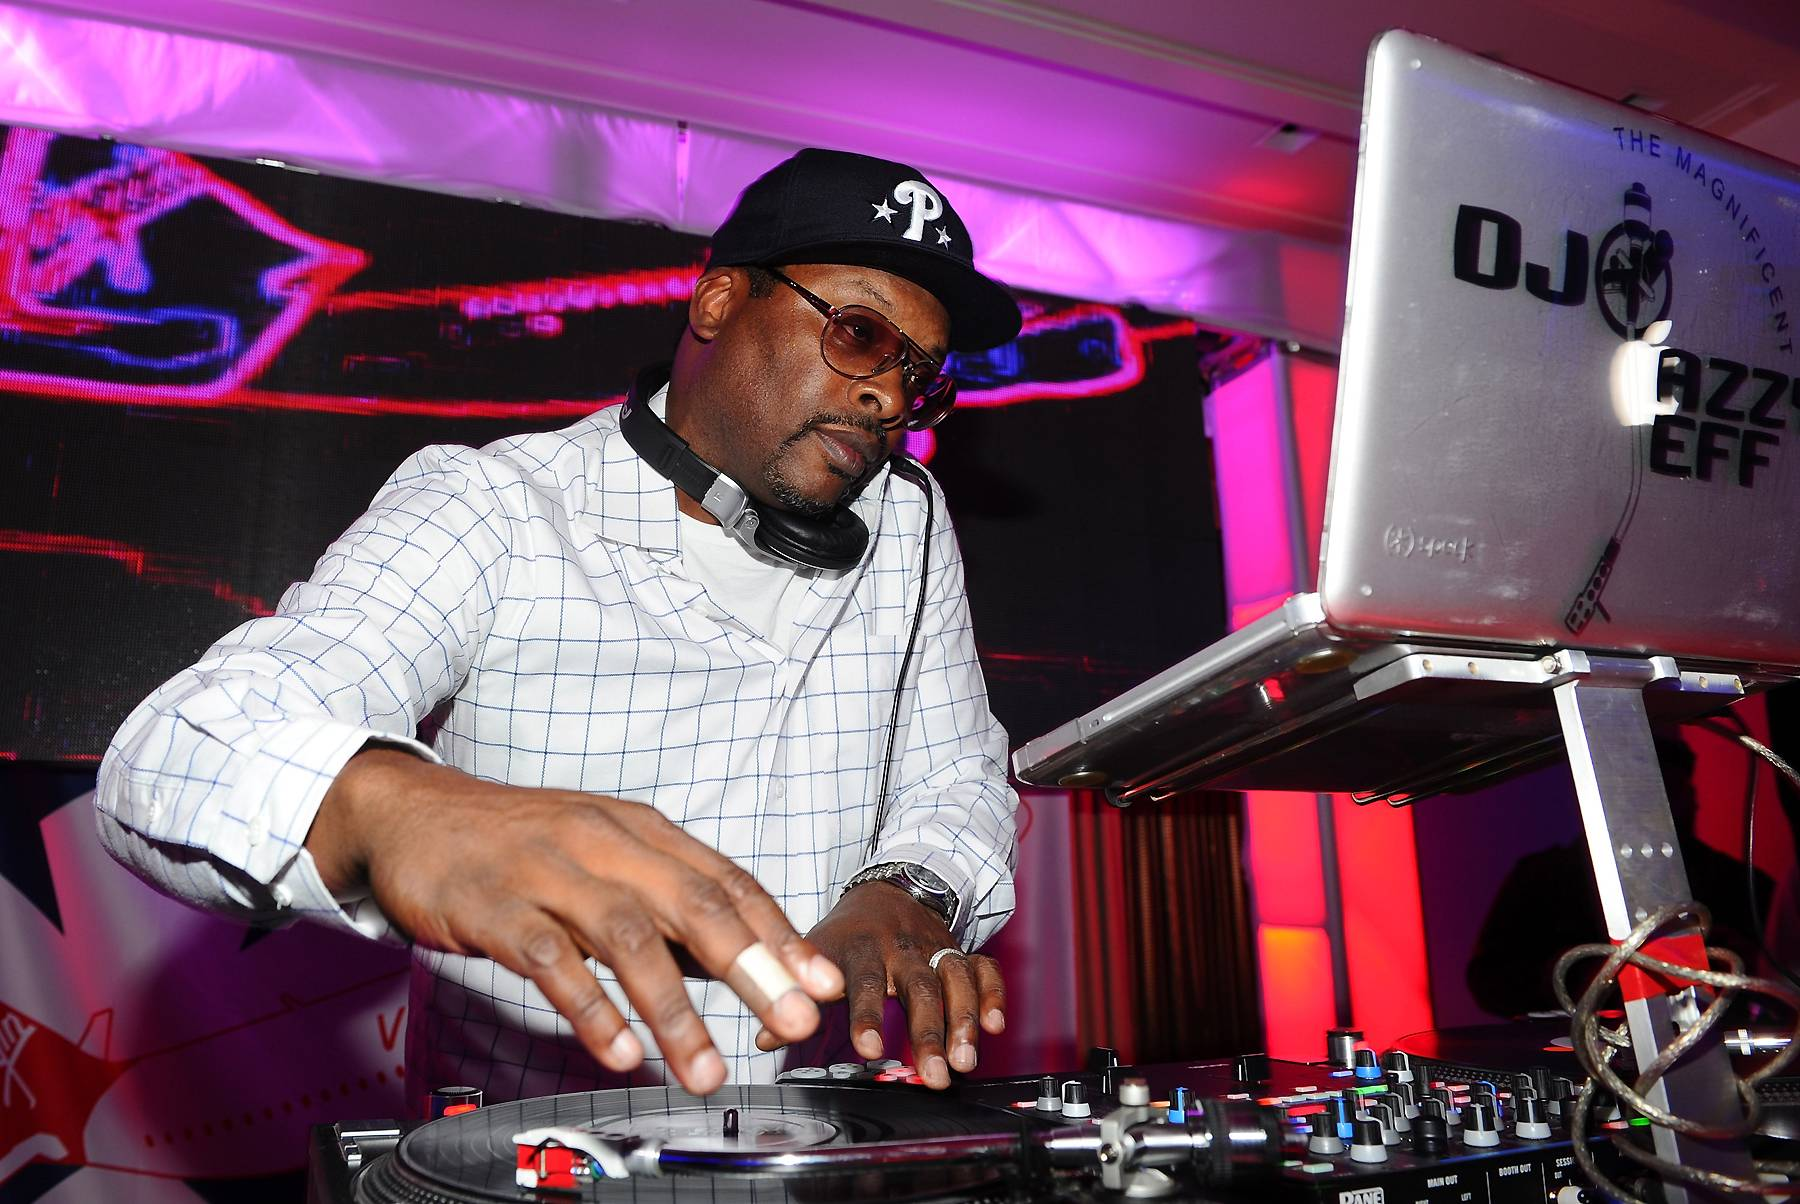 14. DJ Jazzy Jeff - DJ Jazzy Jeff's legacy extends back to the 1980s, when he was one of Philly's illest turntablists and party rockers, credited with popularizing the transformer scratch along with Cash Money. He went worldwide with Will Smith, aka the Fresh Prince; their massive crossover hits propelled them to the small screen with the breakthrough sitcom The Fresh Prince of Bel-Air, which Jeff co-starred in. More recently, Jeff's Touch of Jazz production crew has been an instrumental part of Philly's soul and hip hop scene, banging out beats for Musiq Soulchild and Jill Scott.   (Photo: Michael Buckner/Getty Images)